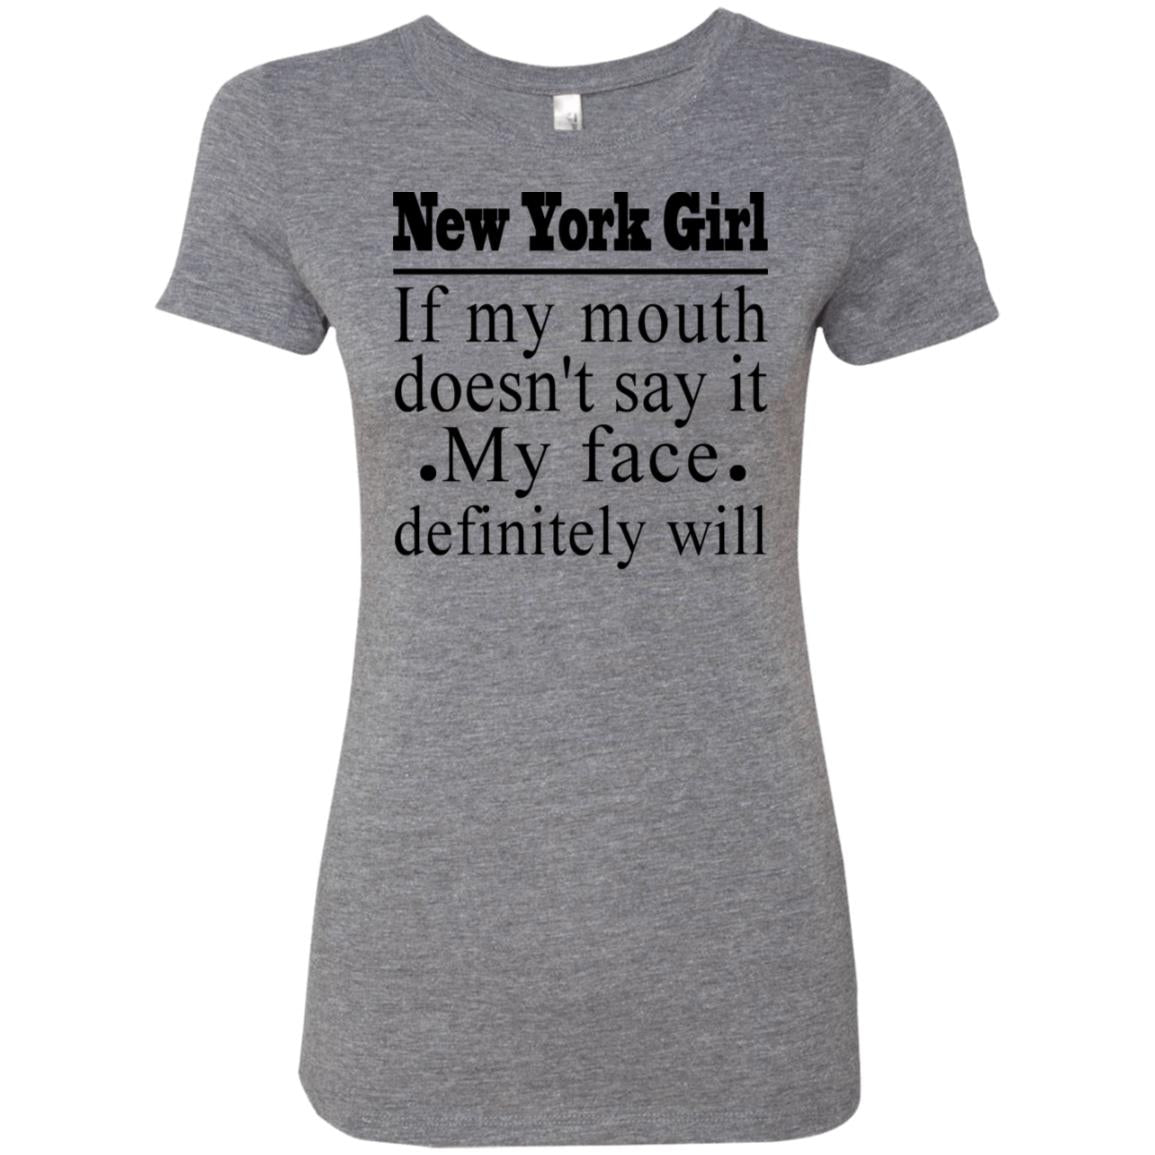 NEW YORK GIRL IF MY MOUTH DOESN'T SAY IT, MY DEFINITELY WILL